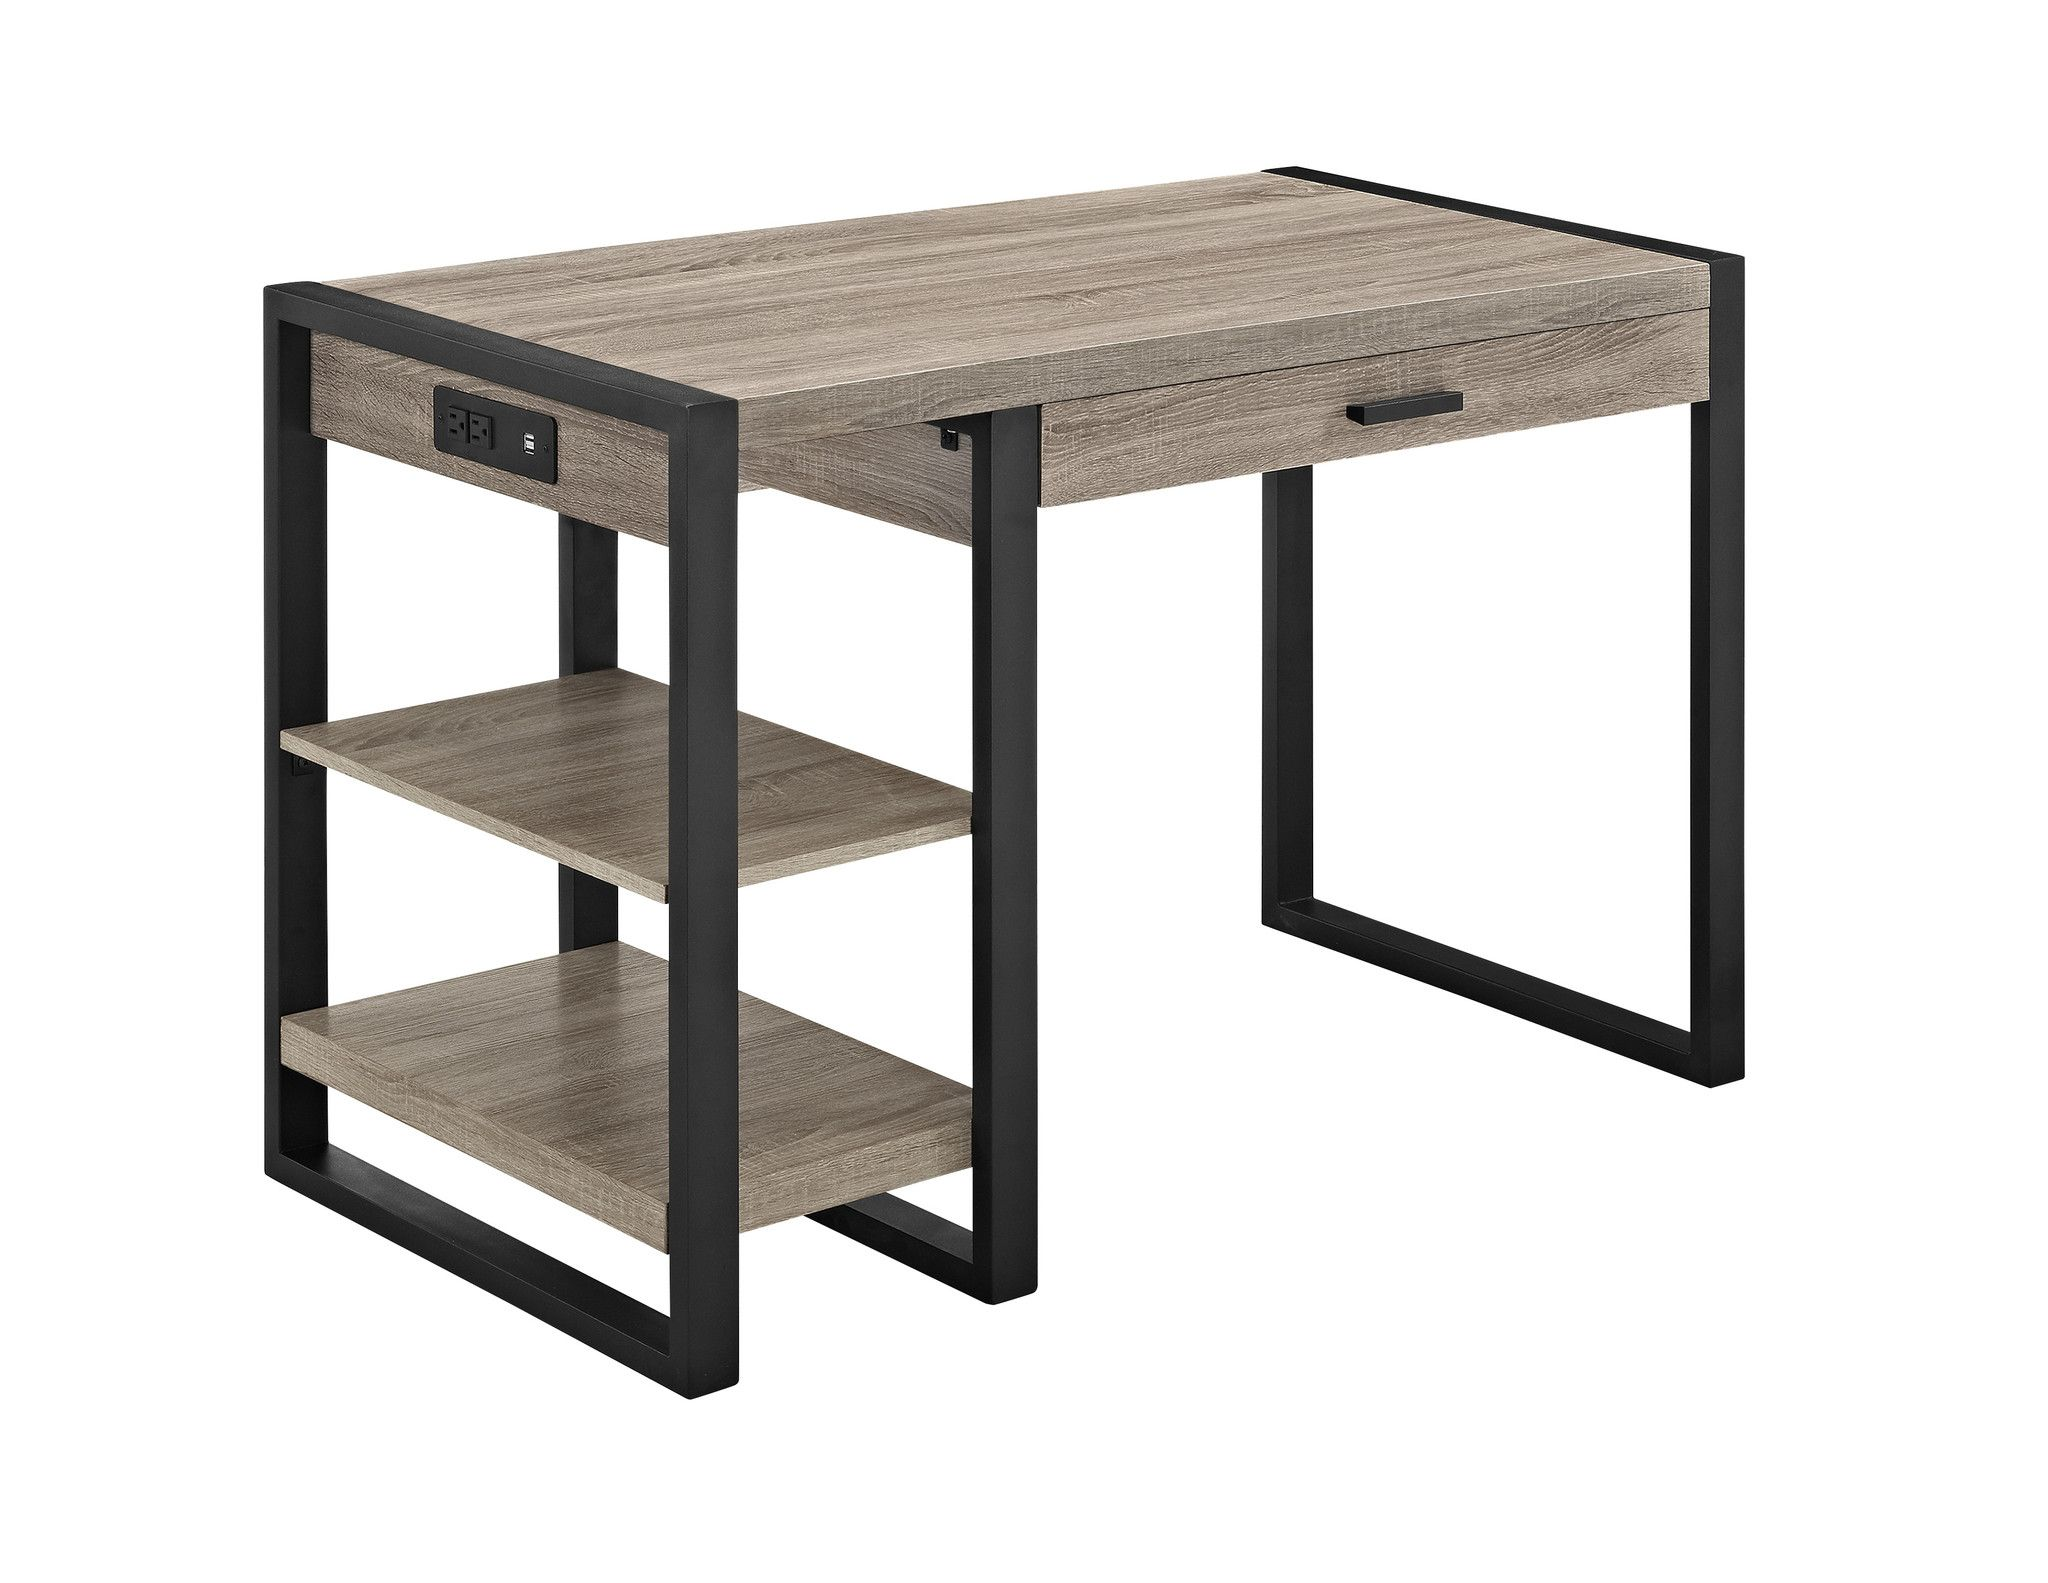 amoeba dining table tables f id room desk at joseph furniture urban executive z or